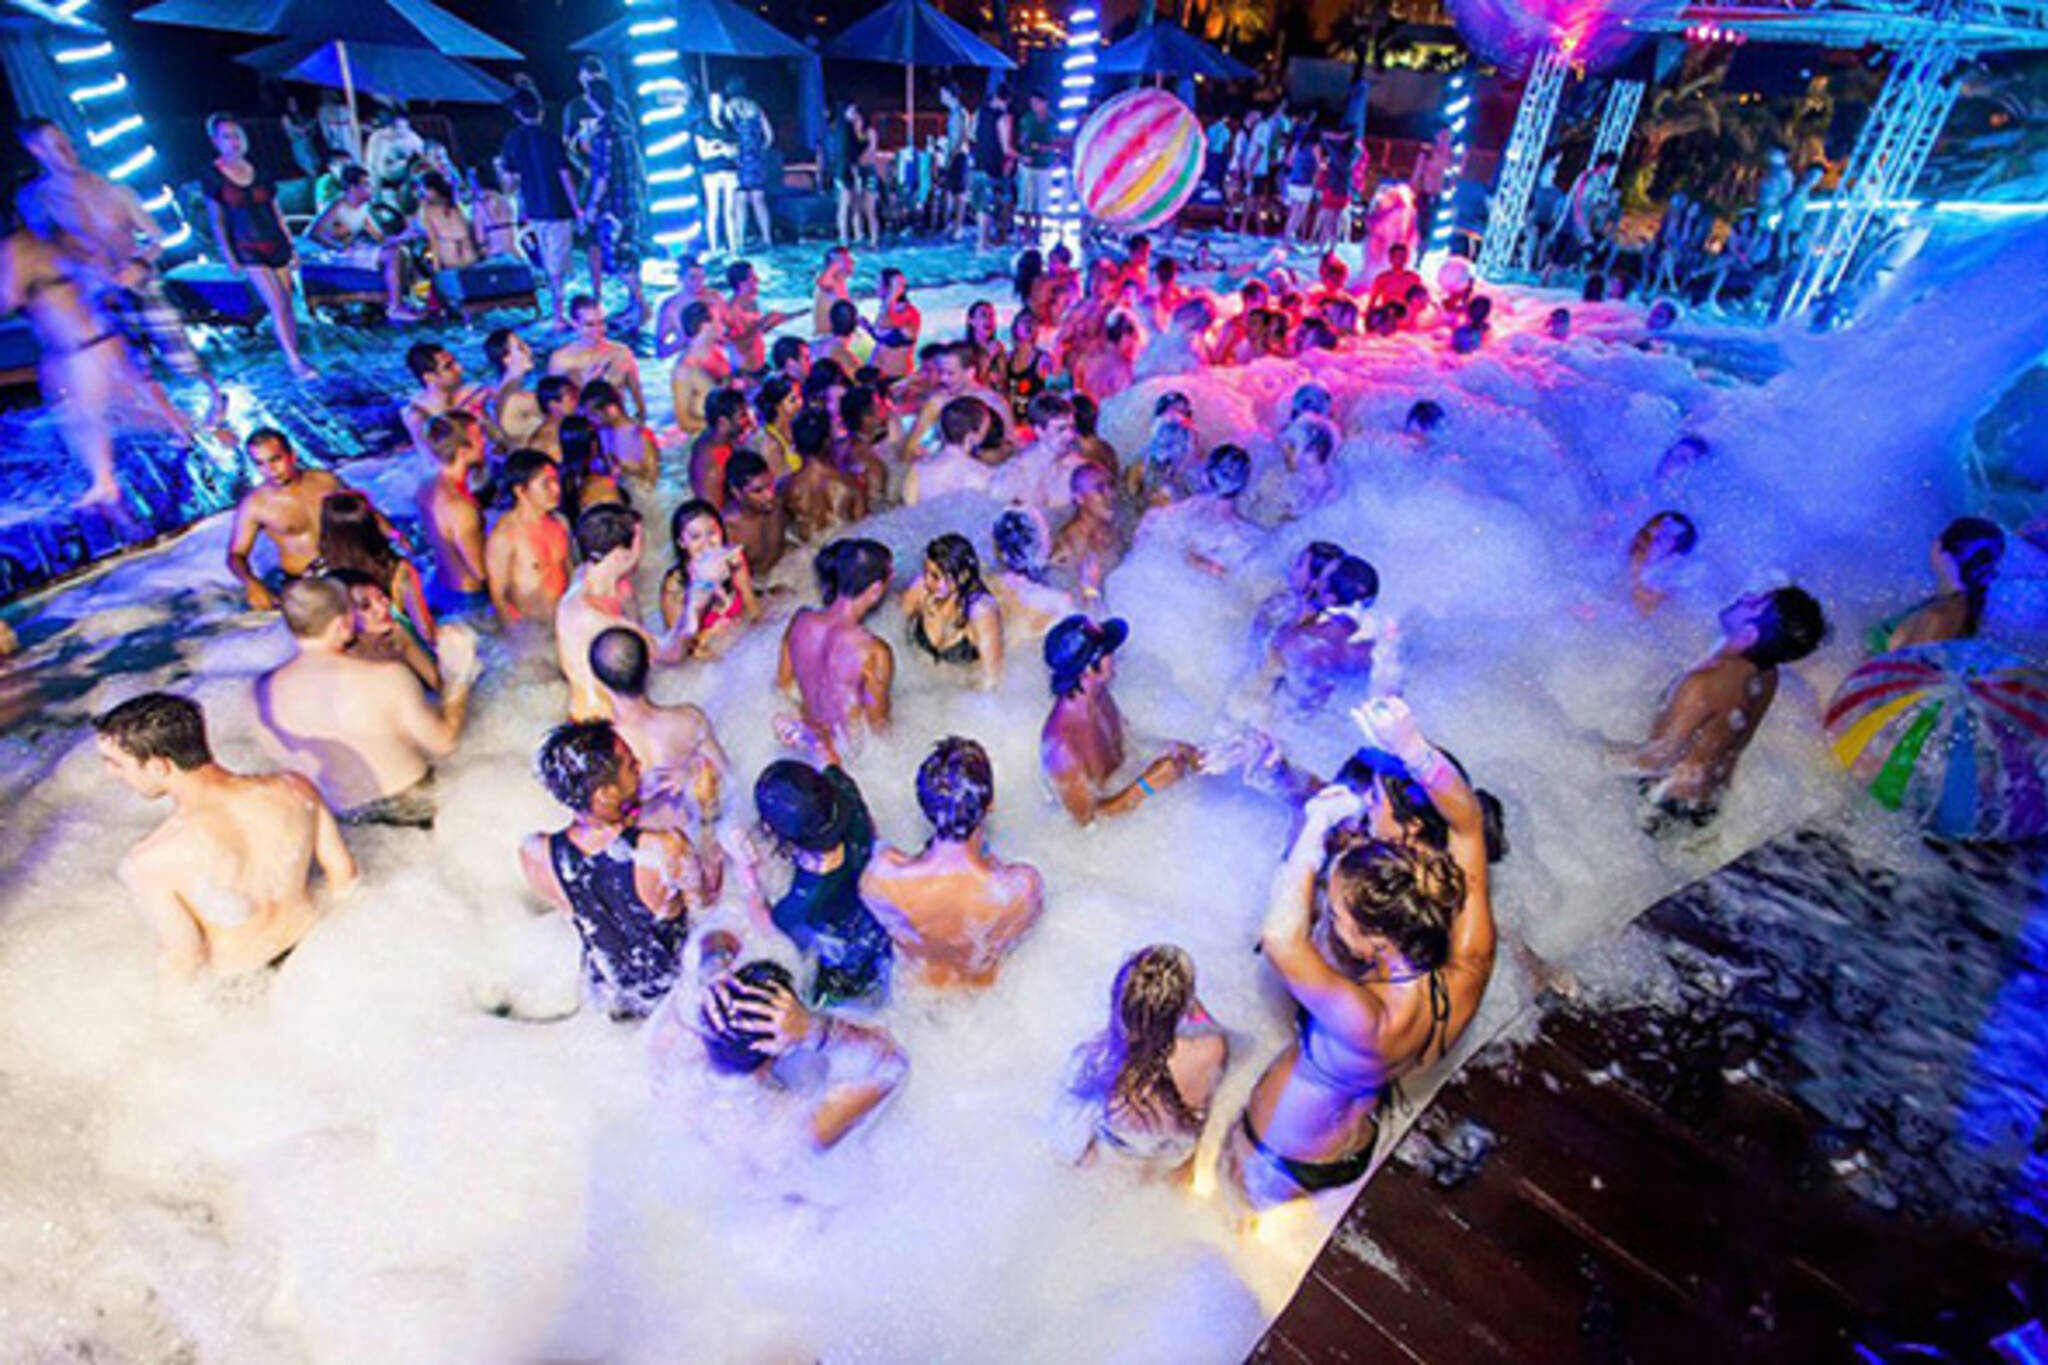 Huge Foam Party Planned For Canada Day In Toronto